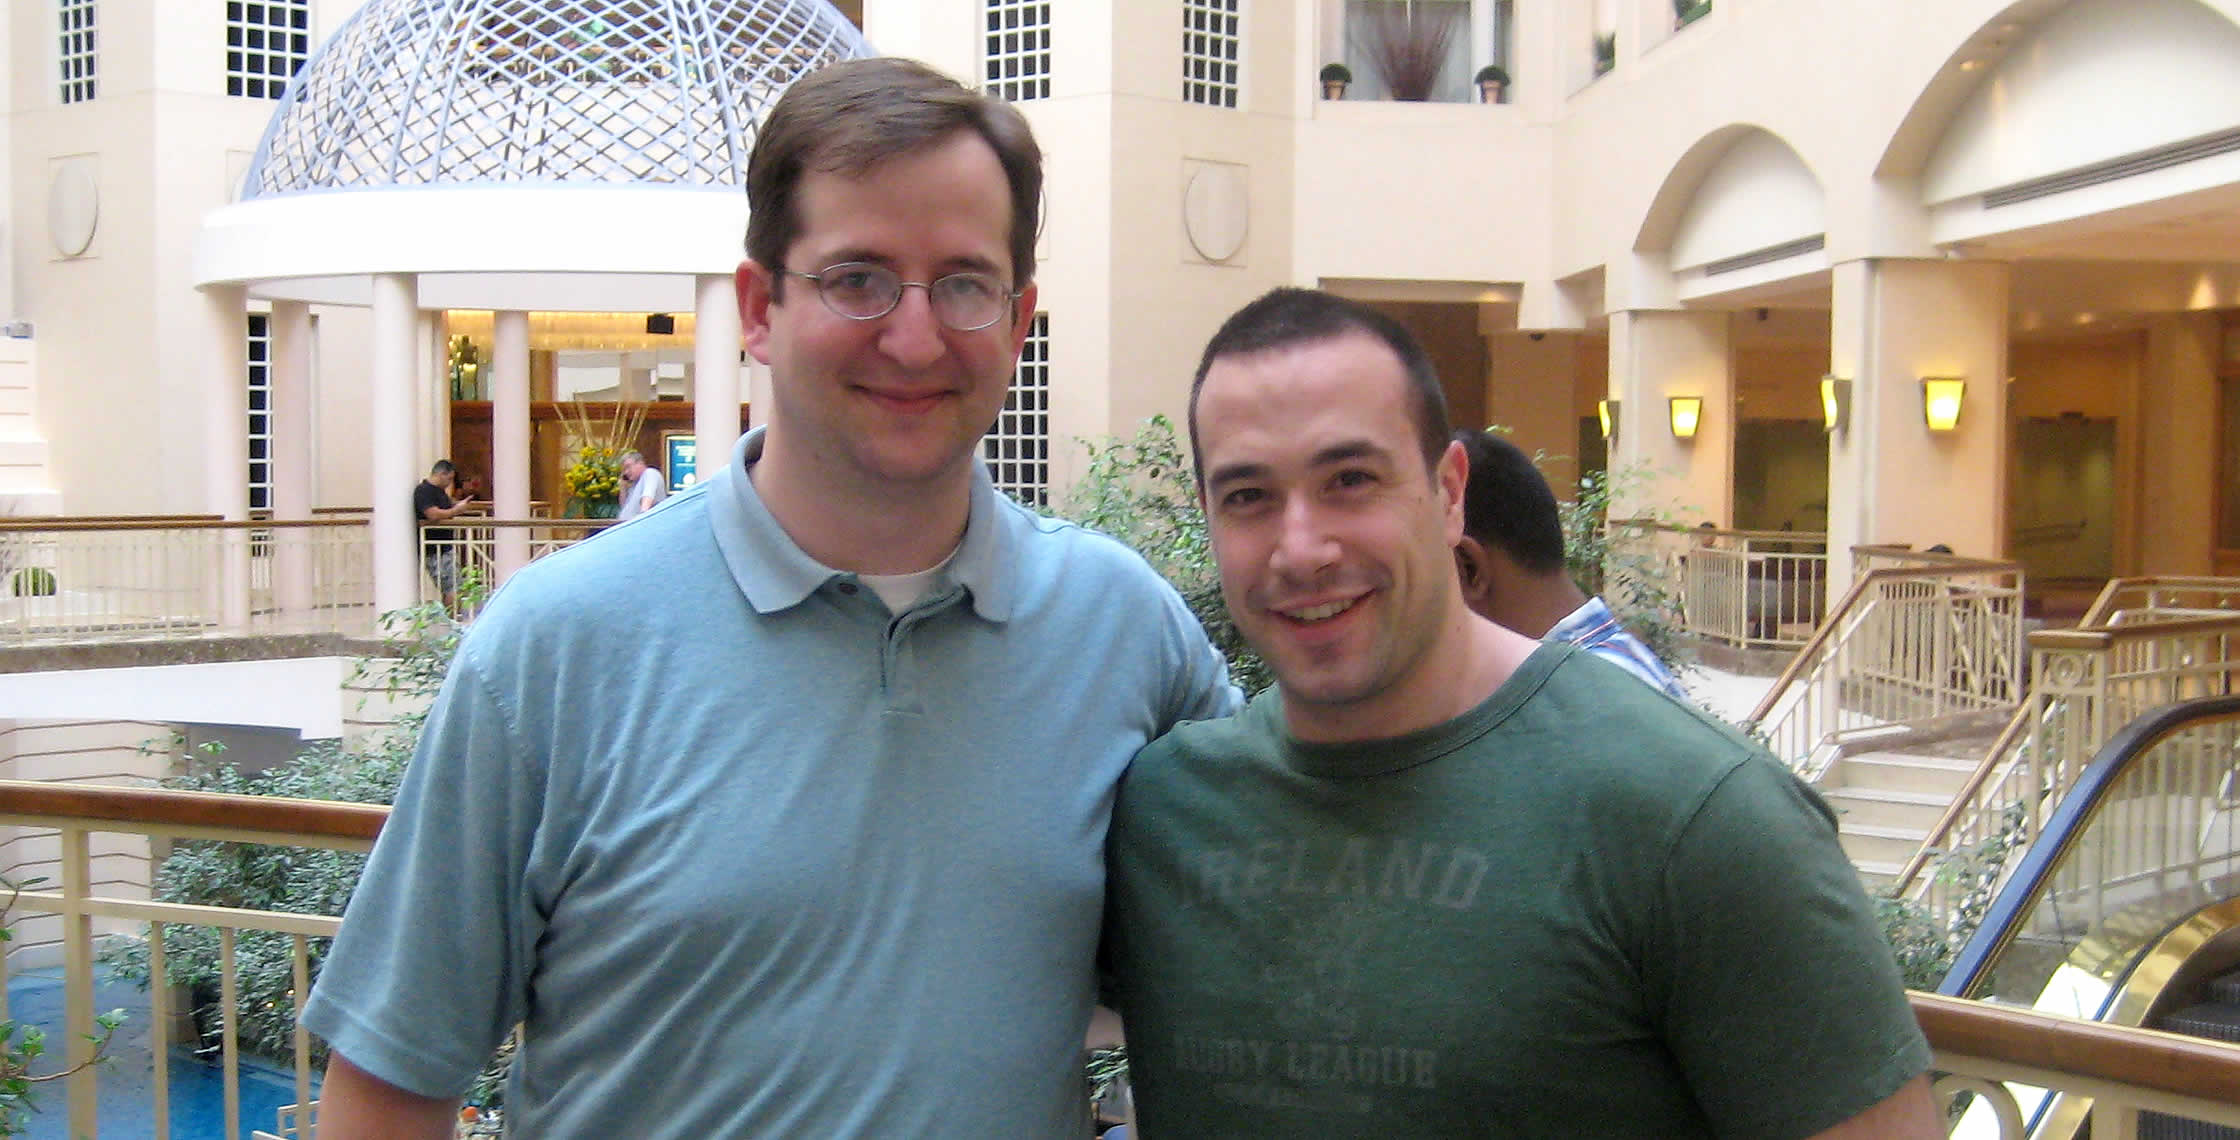 Ben Nadel at CFUNITED 2008 (Washington, D.C.) with: John Mason